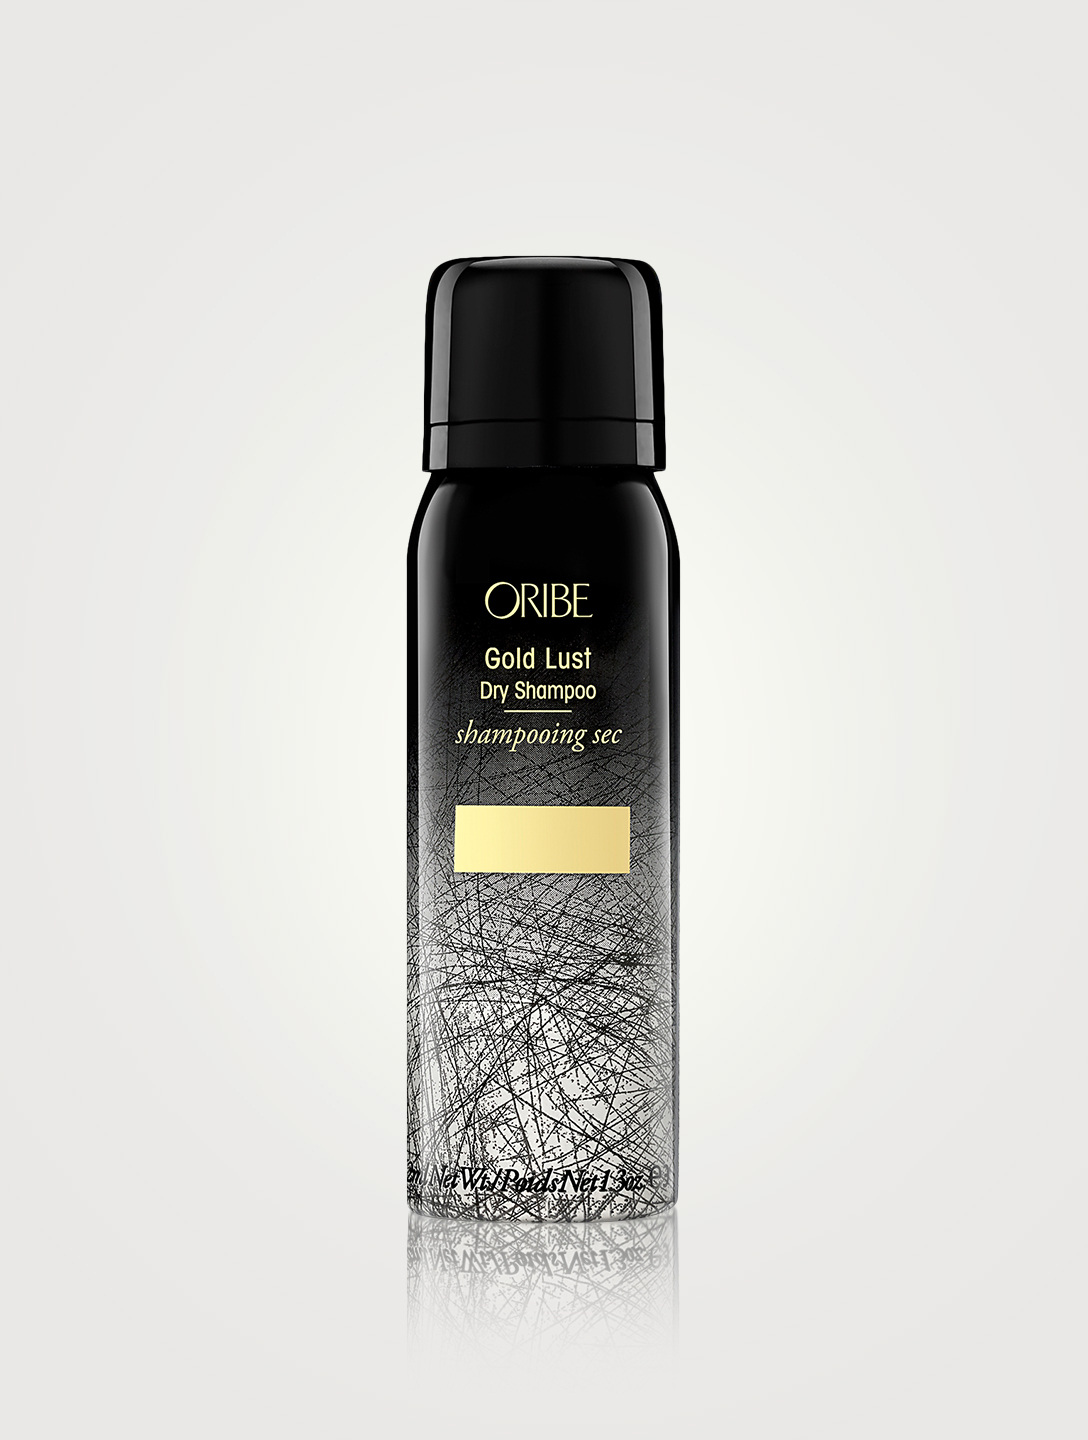 ORIBE Gold Lust Dry Shampoo - Travel Size Beauty